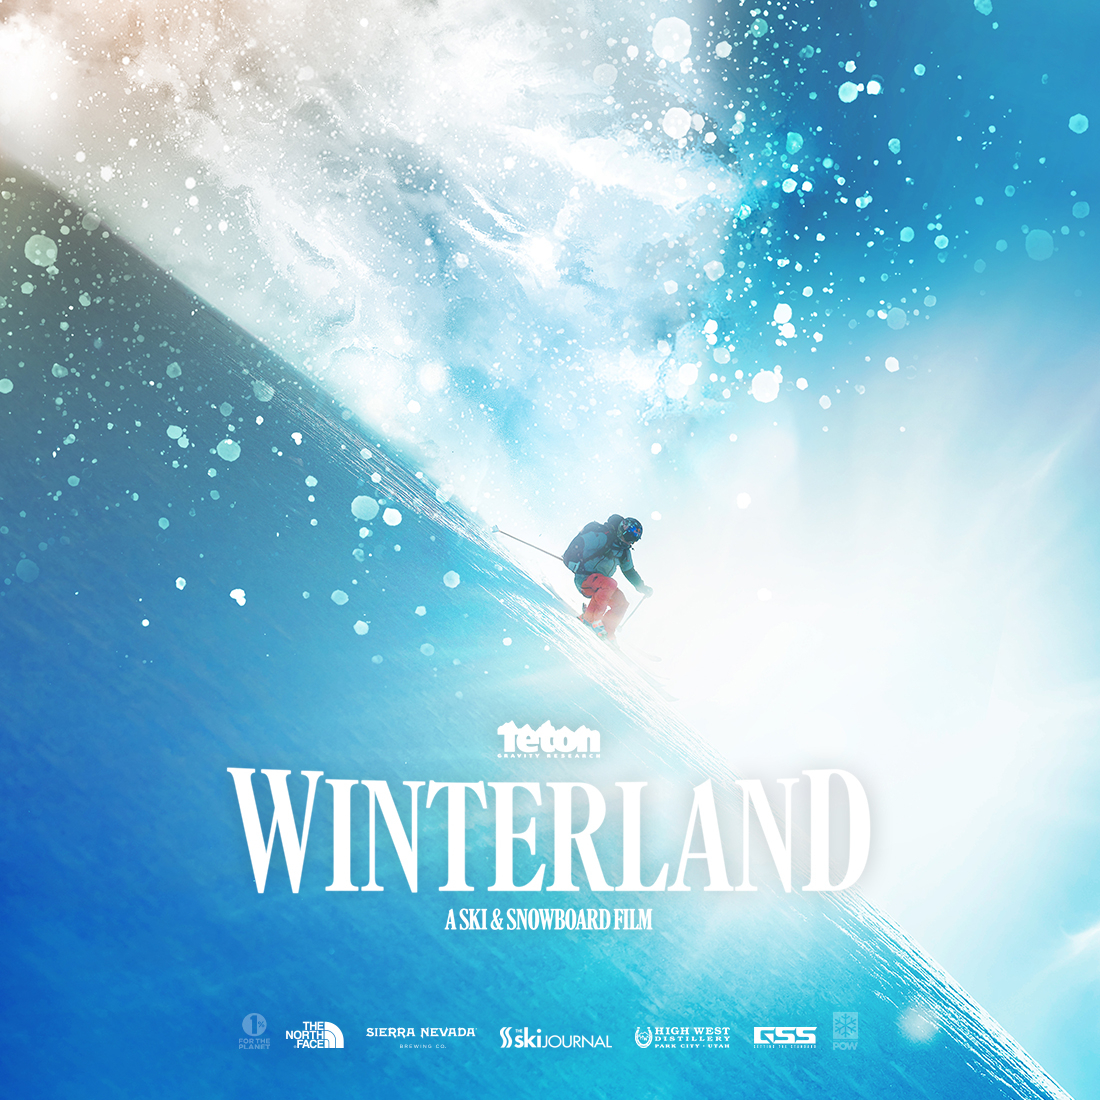 Join us for a @tetongravity Movie Night this Saturday 1/25 at 6pm! We'll be showing the new film, Winterland, in Seasons. Tix are $10 & include a soft drink & snack. A portion of the proceeds go to The Windham Race Factory. #tetongravityresearch #windhammountain #movienight pic.twitter.com/8FCo1N8QiI